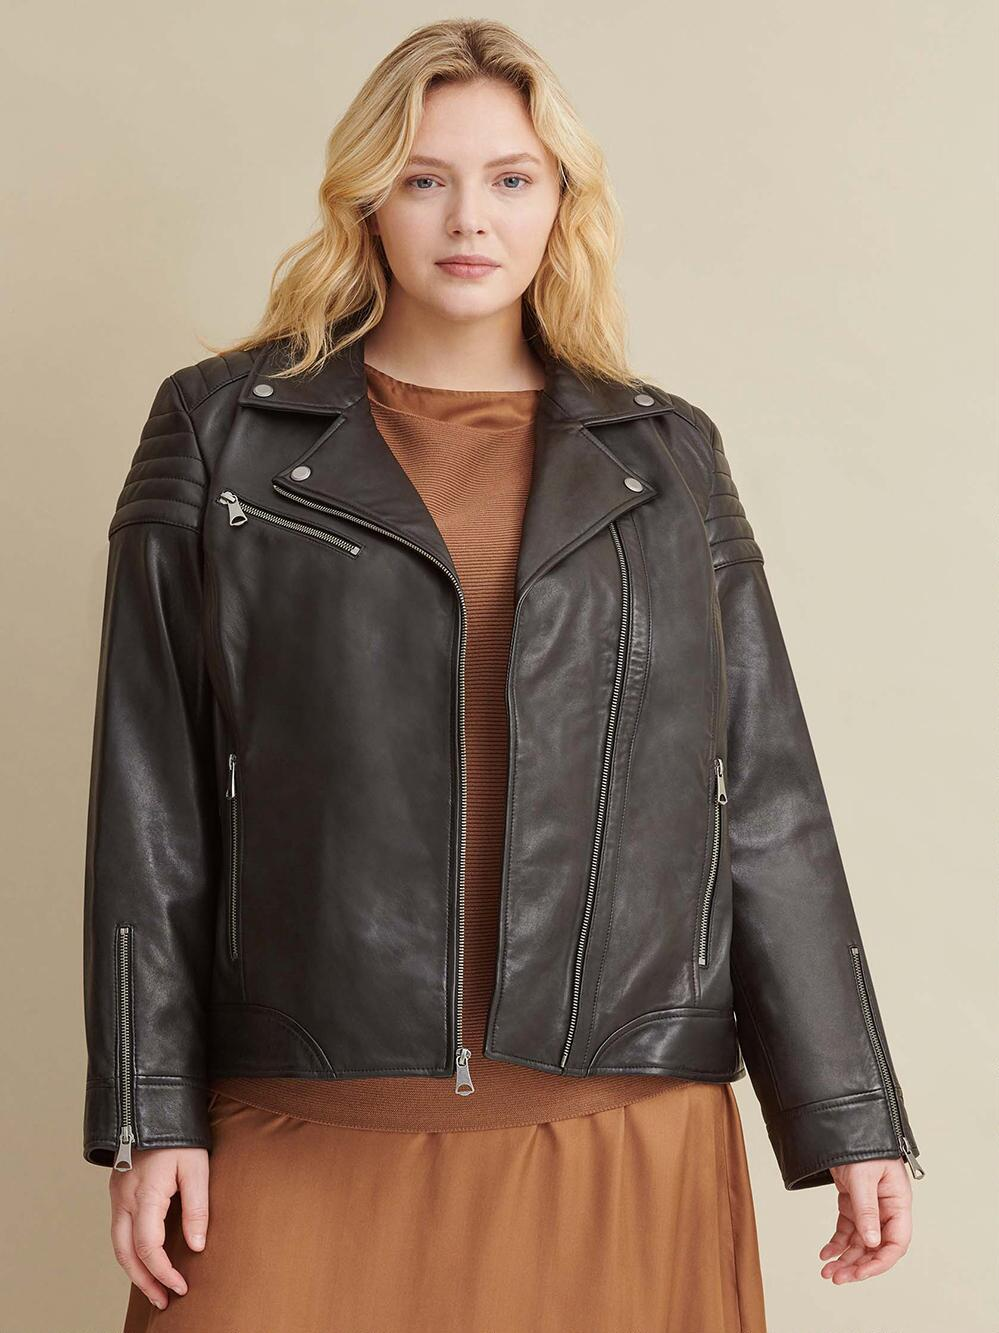 Plus Size Leather Jacket for Women